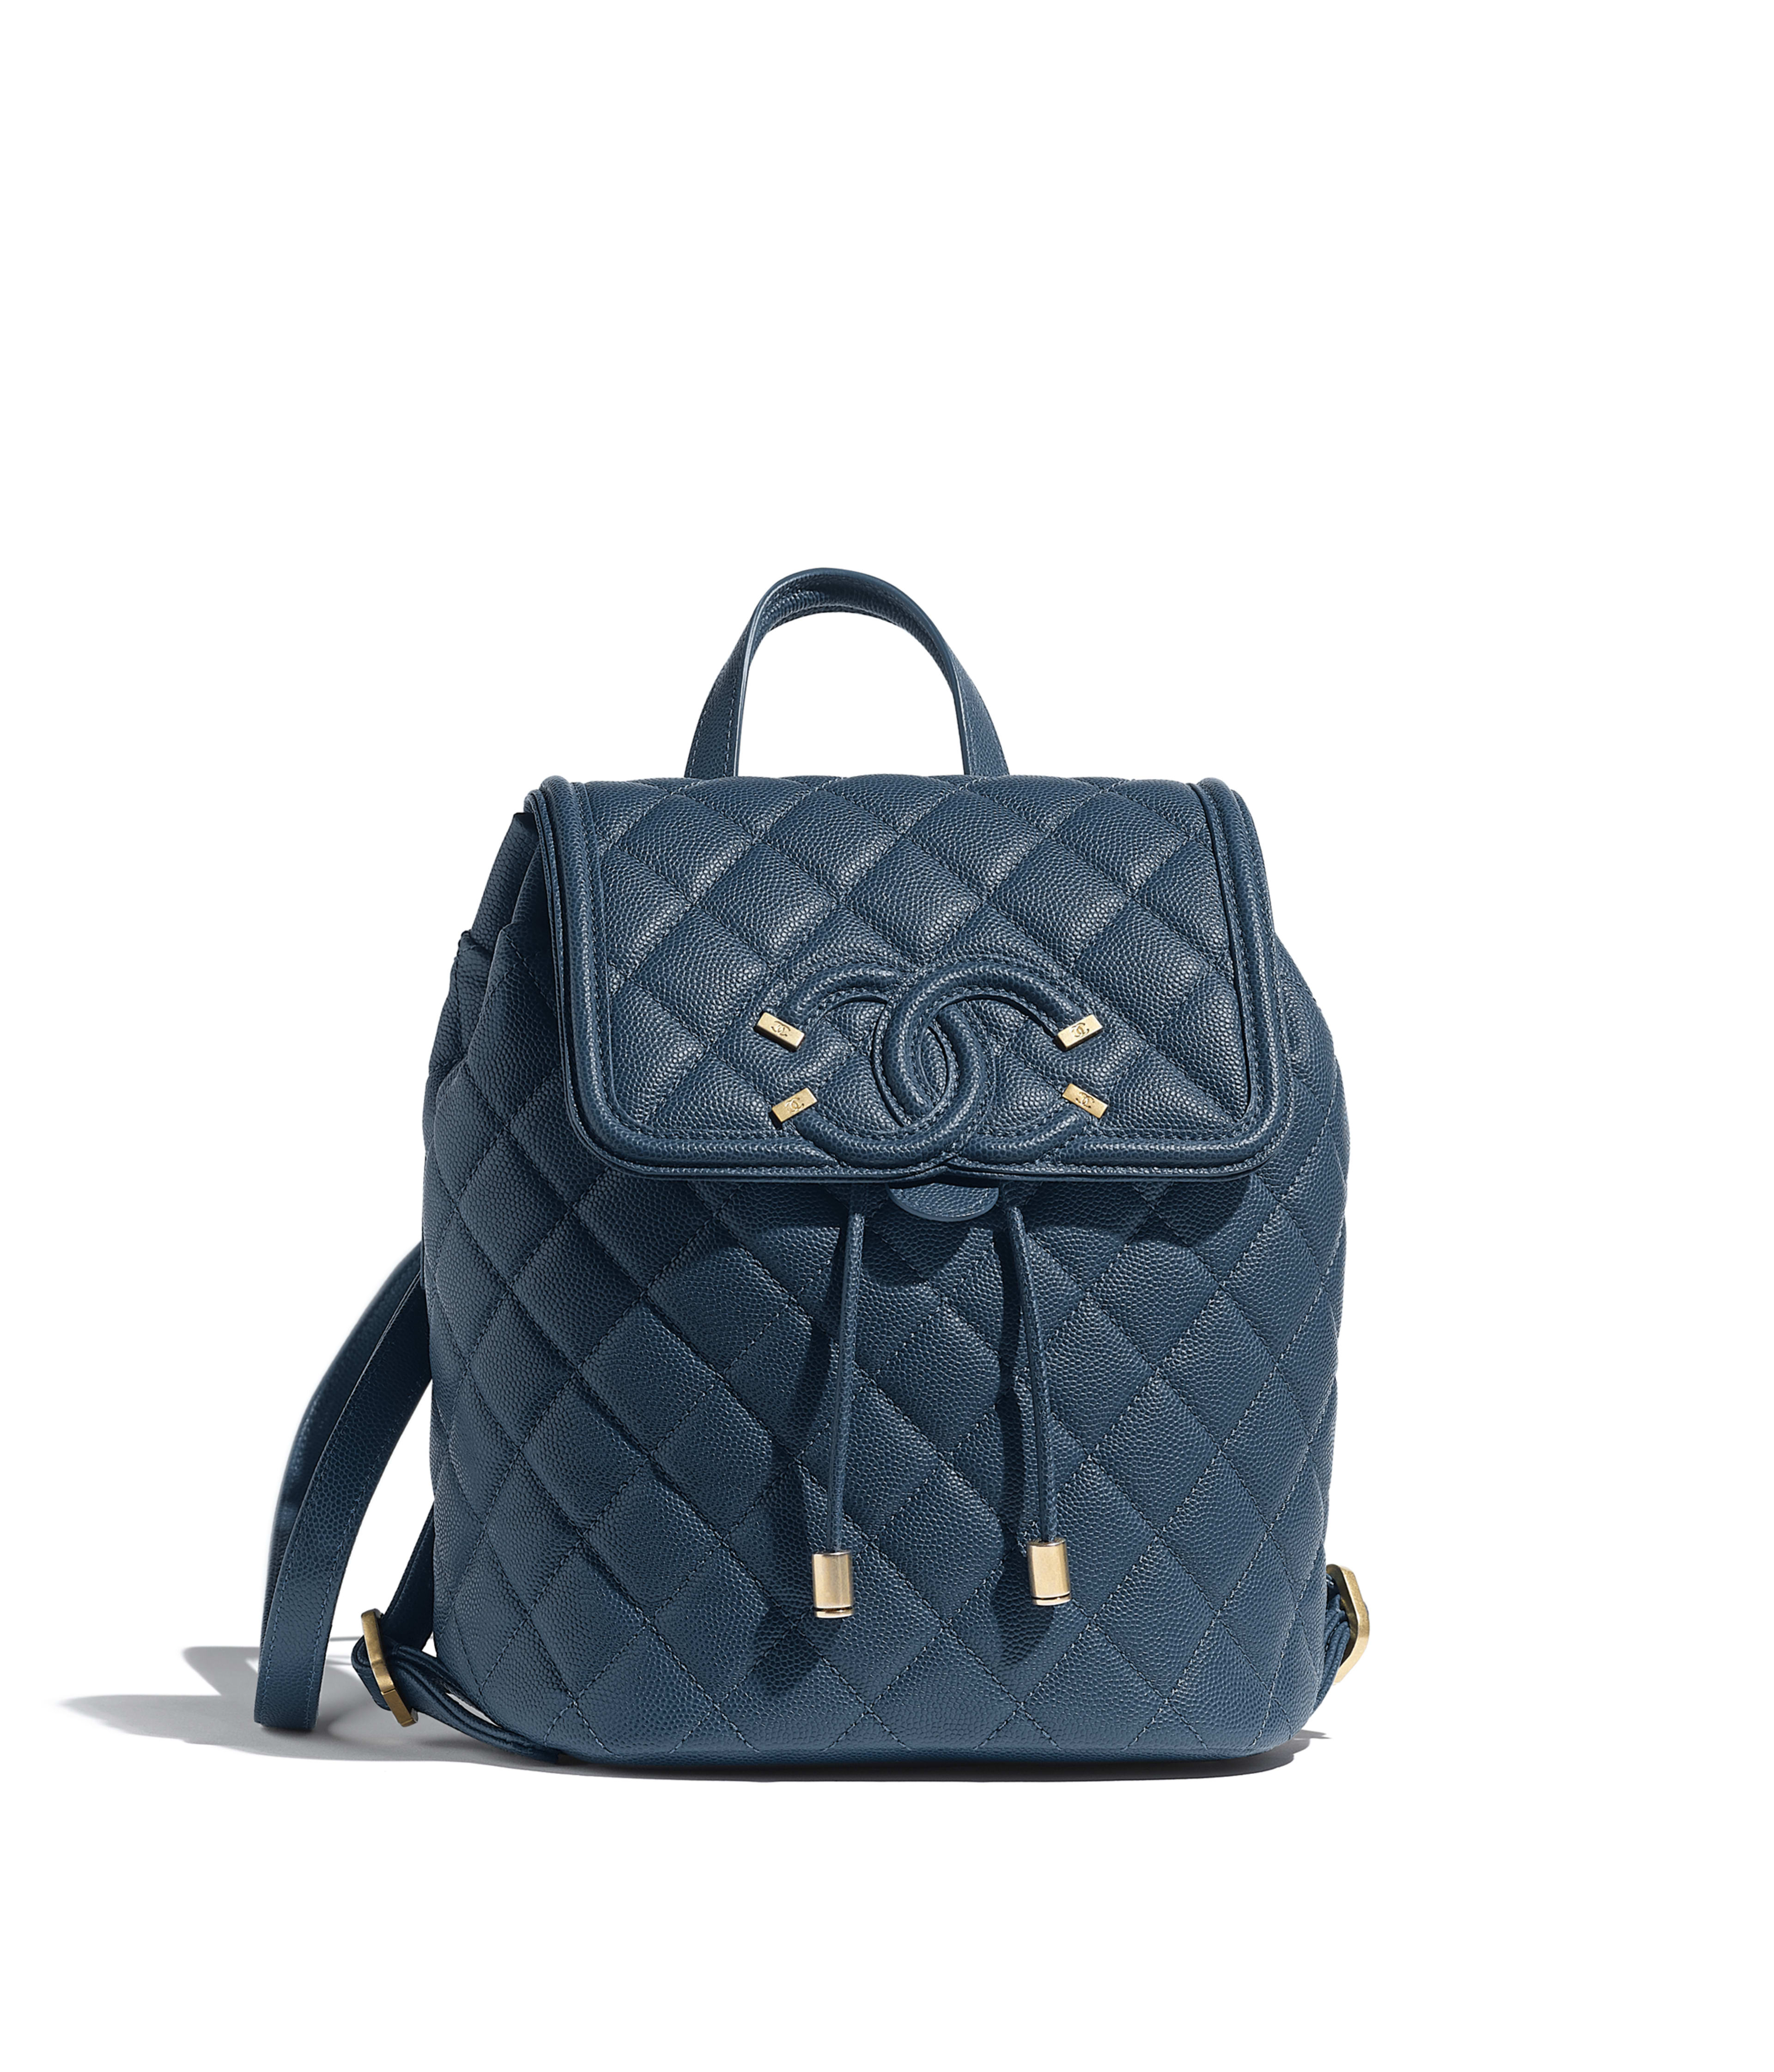 aded140f2 Small Backpack Grained Calfskin & Gold-Tone Metal, Blue Ref.  AS0926B01186N4857